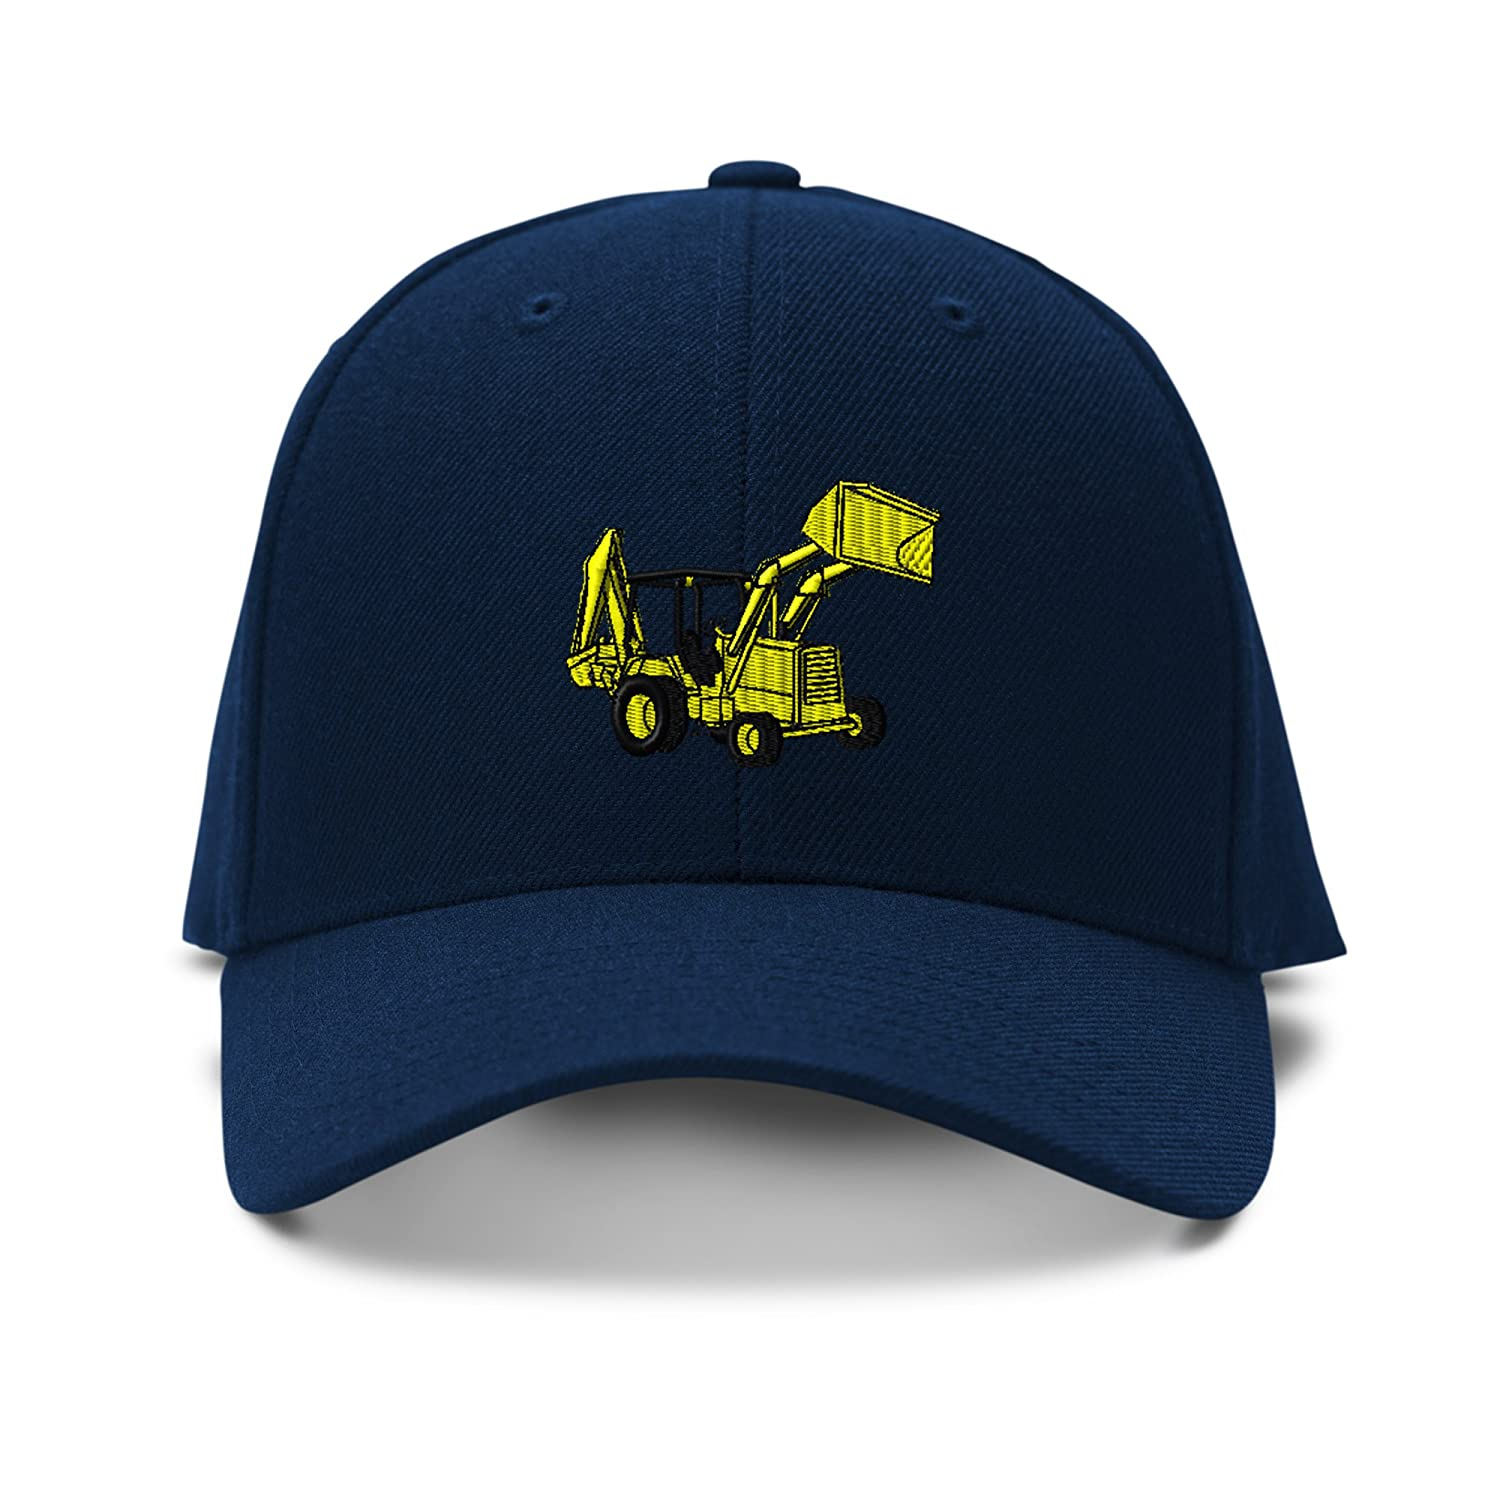 Backhoe Loader Construction Embroidered KID CHILDREN SIZE Adjustable Cap Hat KCAPVEEQ0045_N